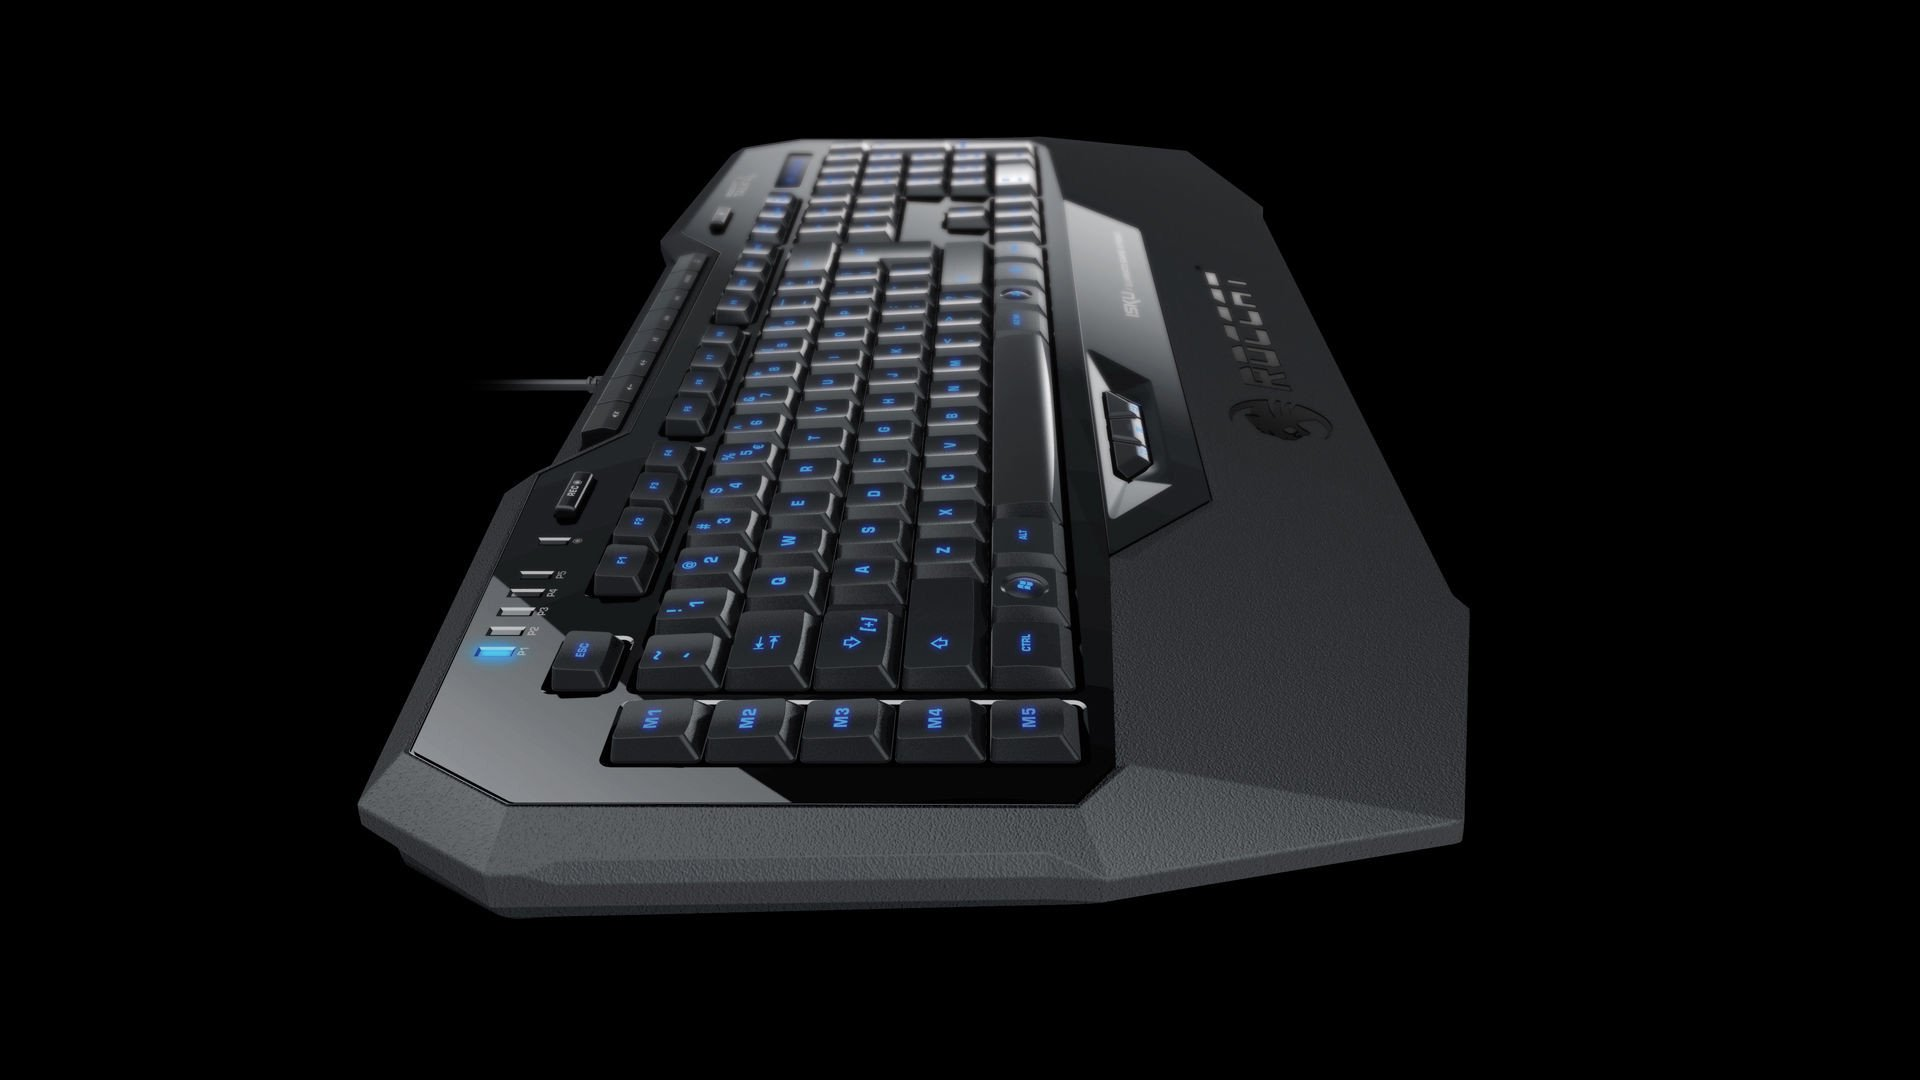 Keyboard Roccat Isku Illuminated Gaming Keyboard